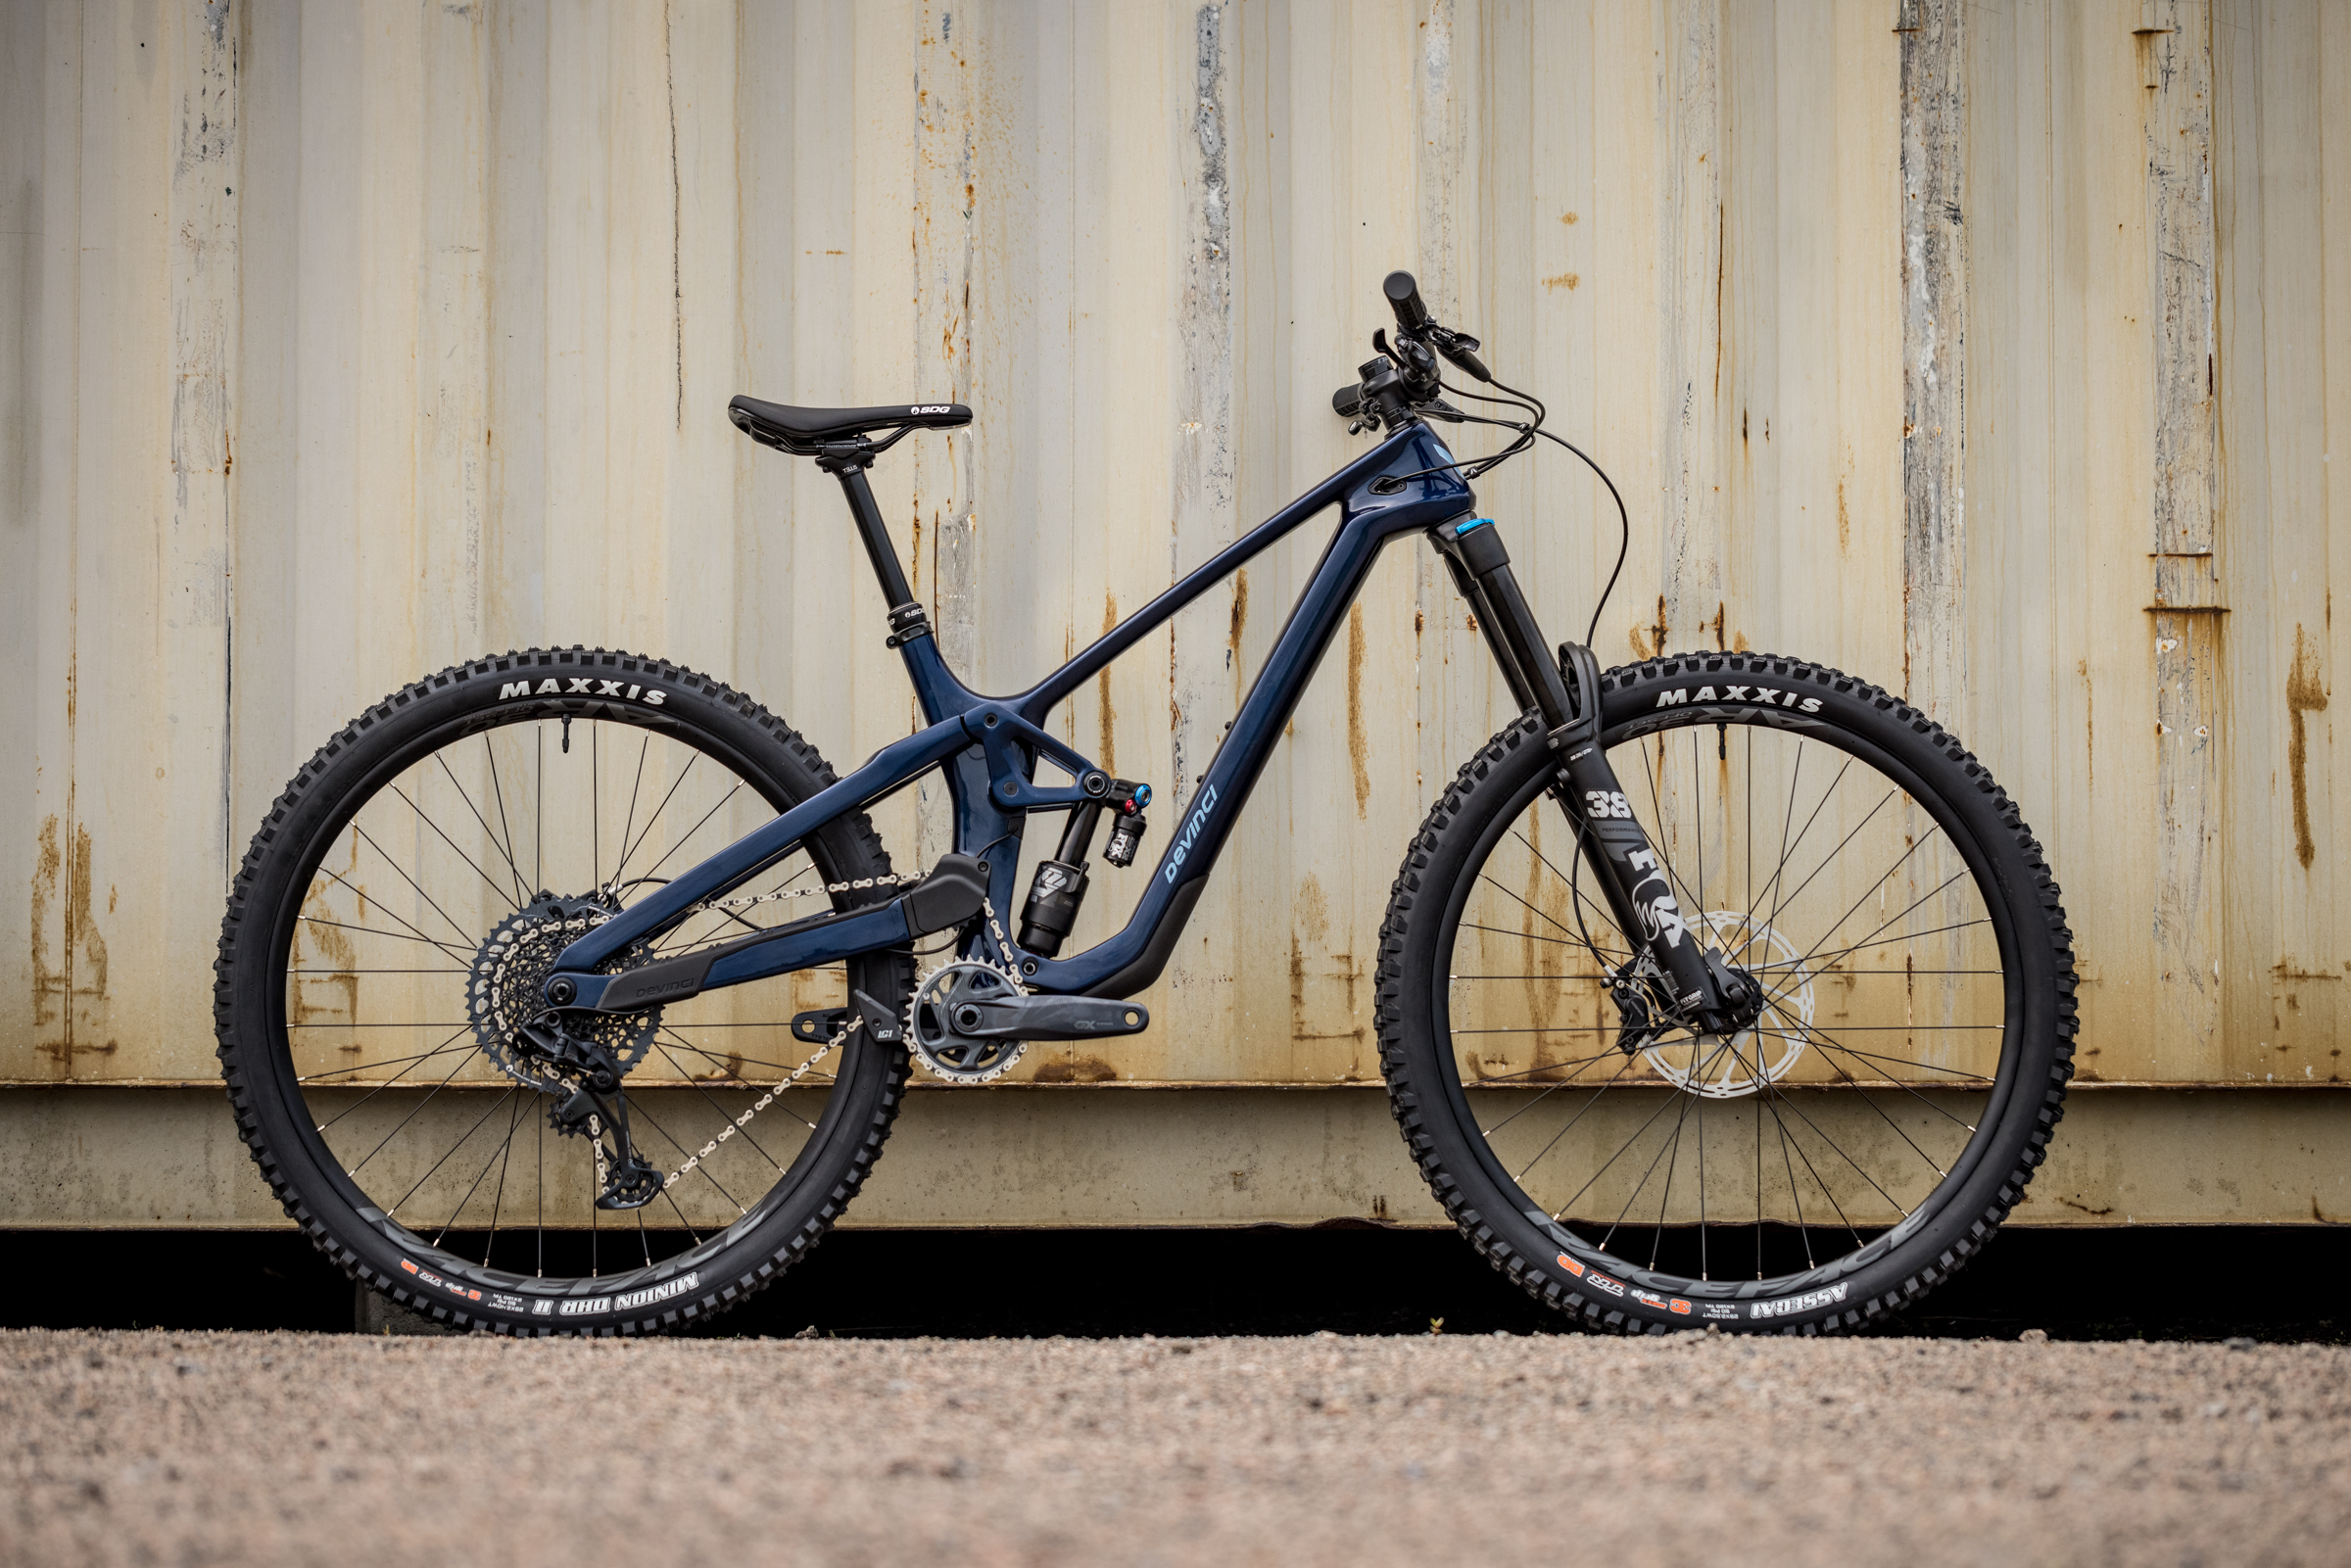 David Golay reviews the Devinci Spartan for Blister